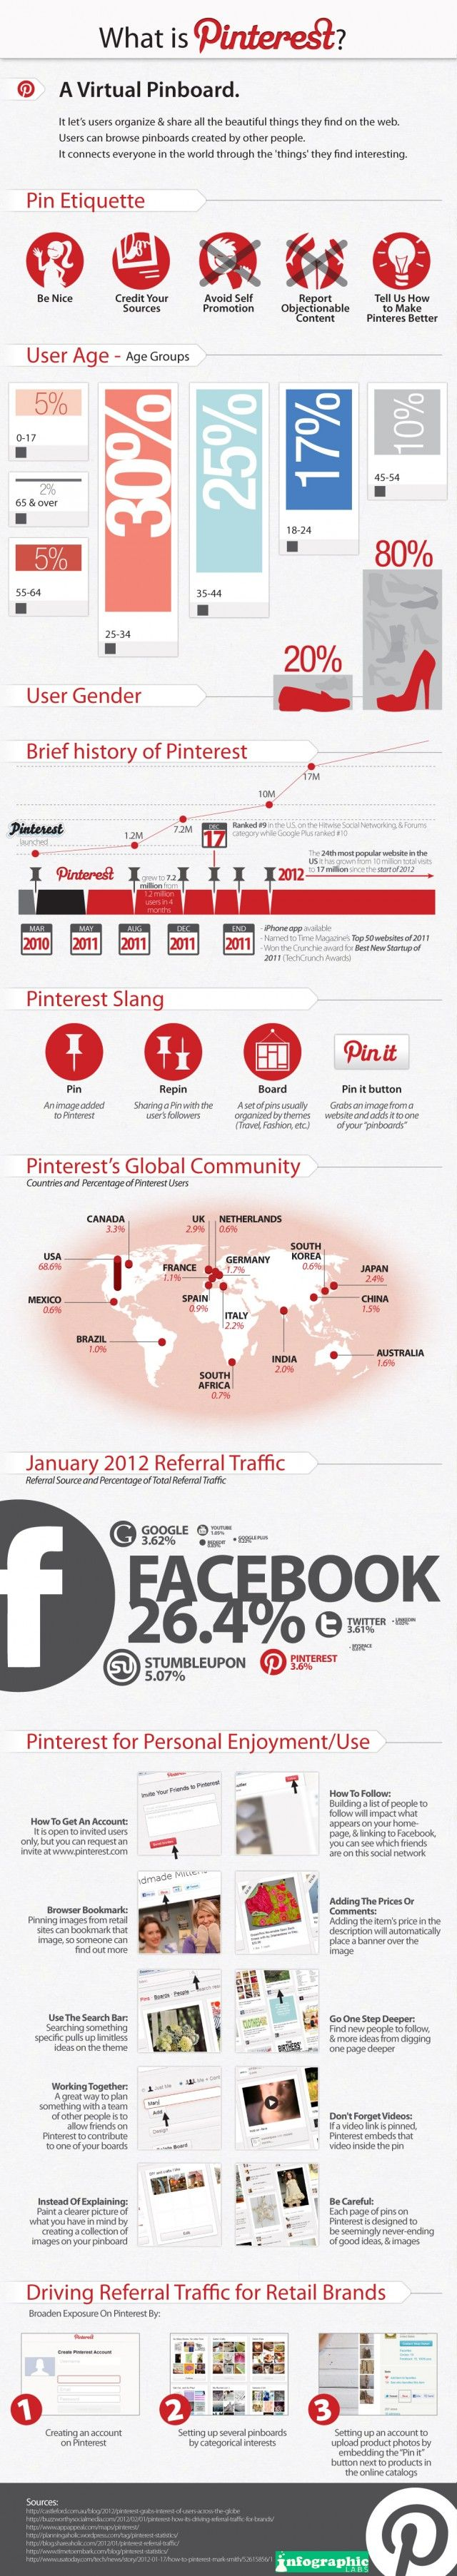 Pinterest – The Social Media Darling Of 2012 [ Infographic ]